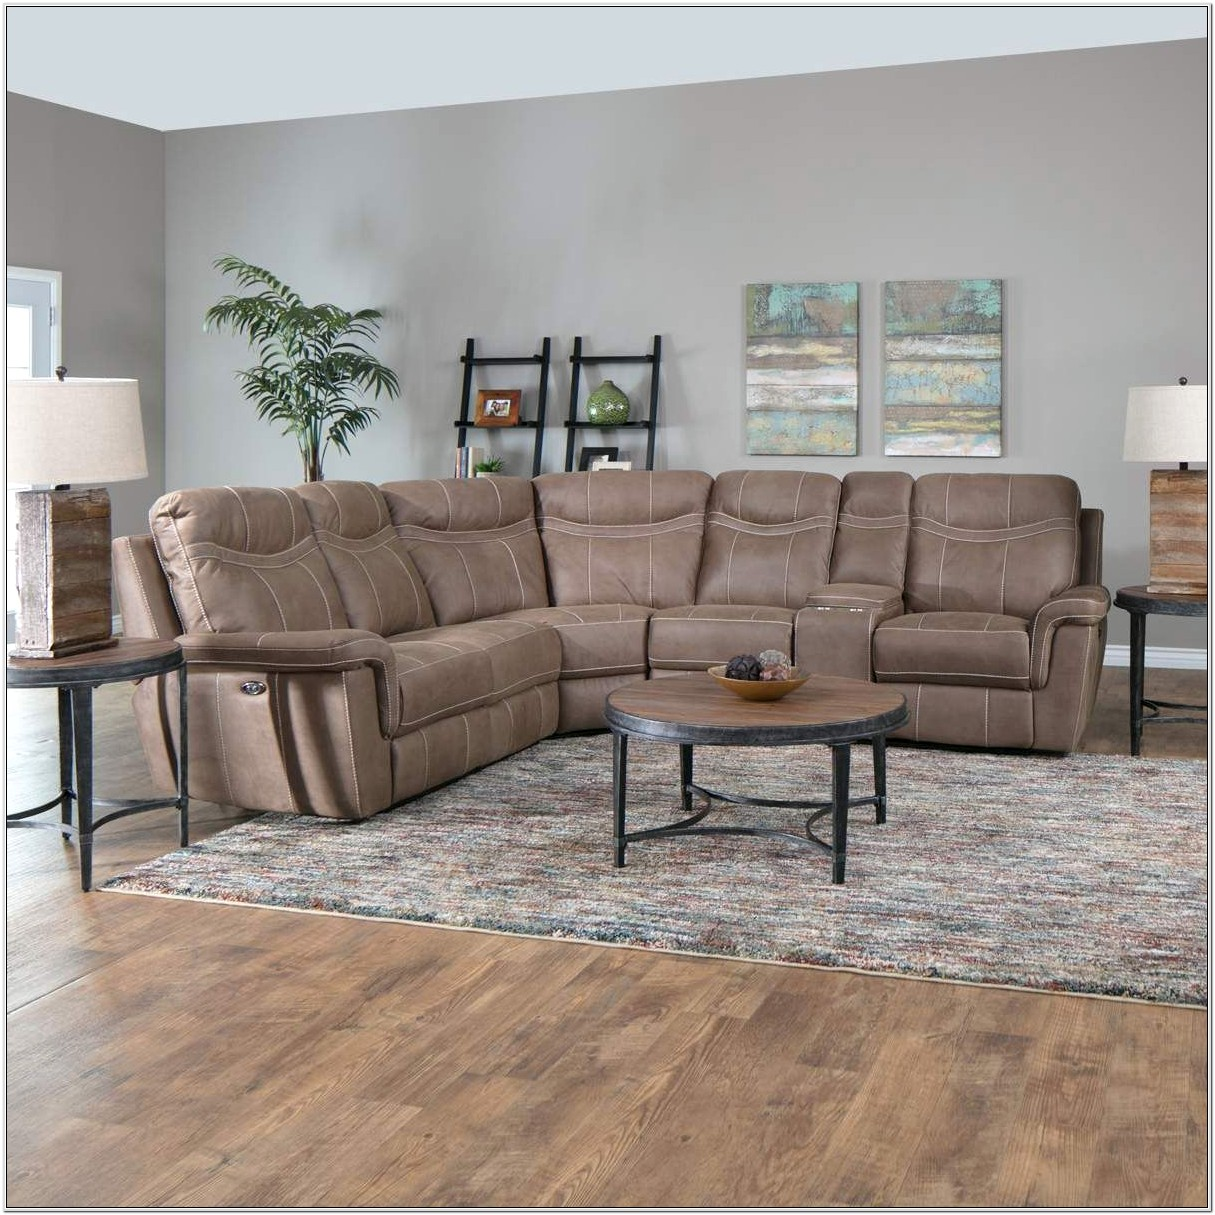 Jeromes Reclining Living Room Sets